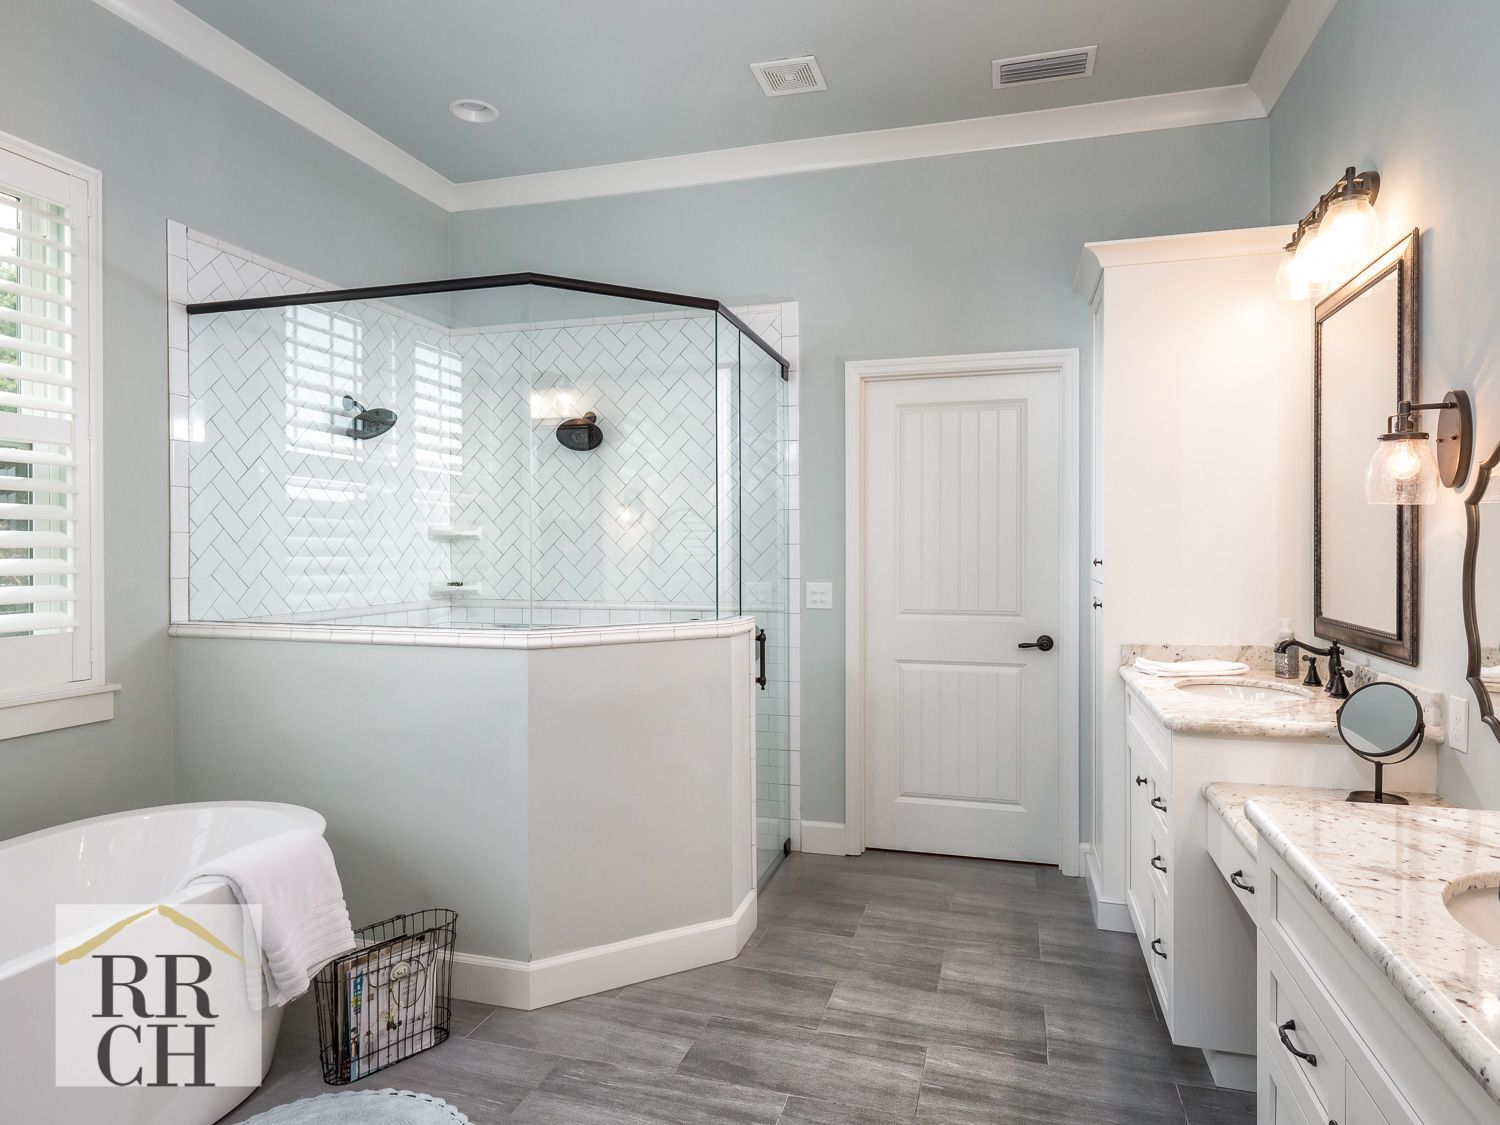 Master Bath Paint By Sherwin Williams In Sea Salt Color Freestanding Tub By Jacuzzi In Celes Bathroom Freestanding Corner Jacuzzi Tub Bathroom Remodel Master